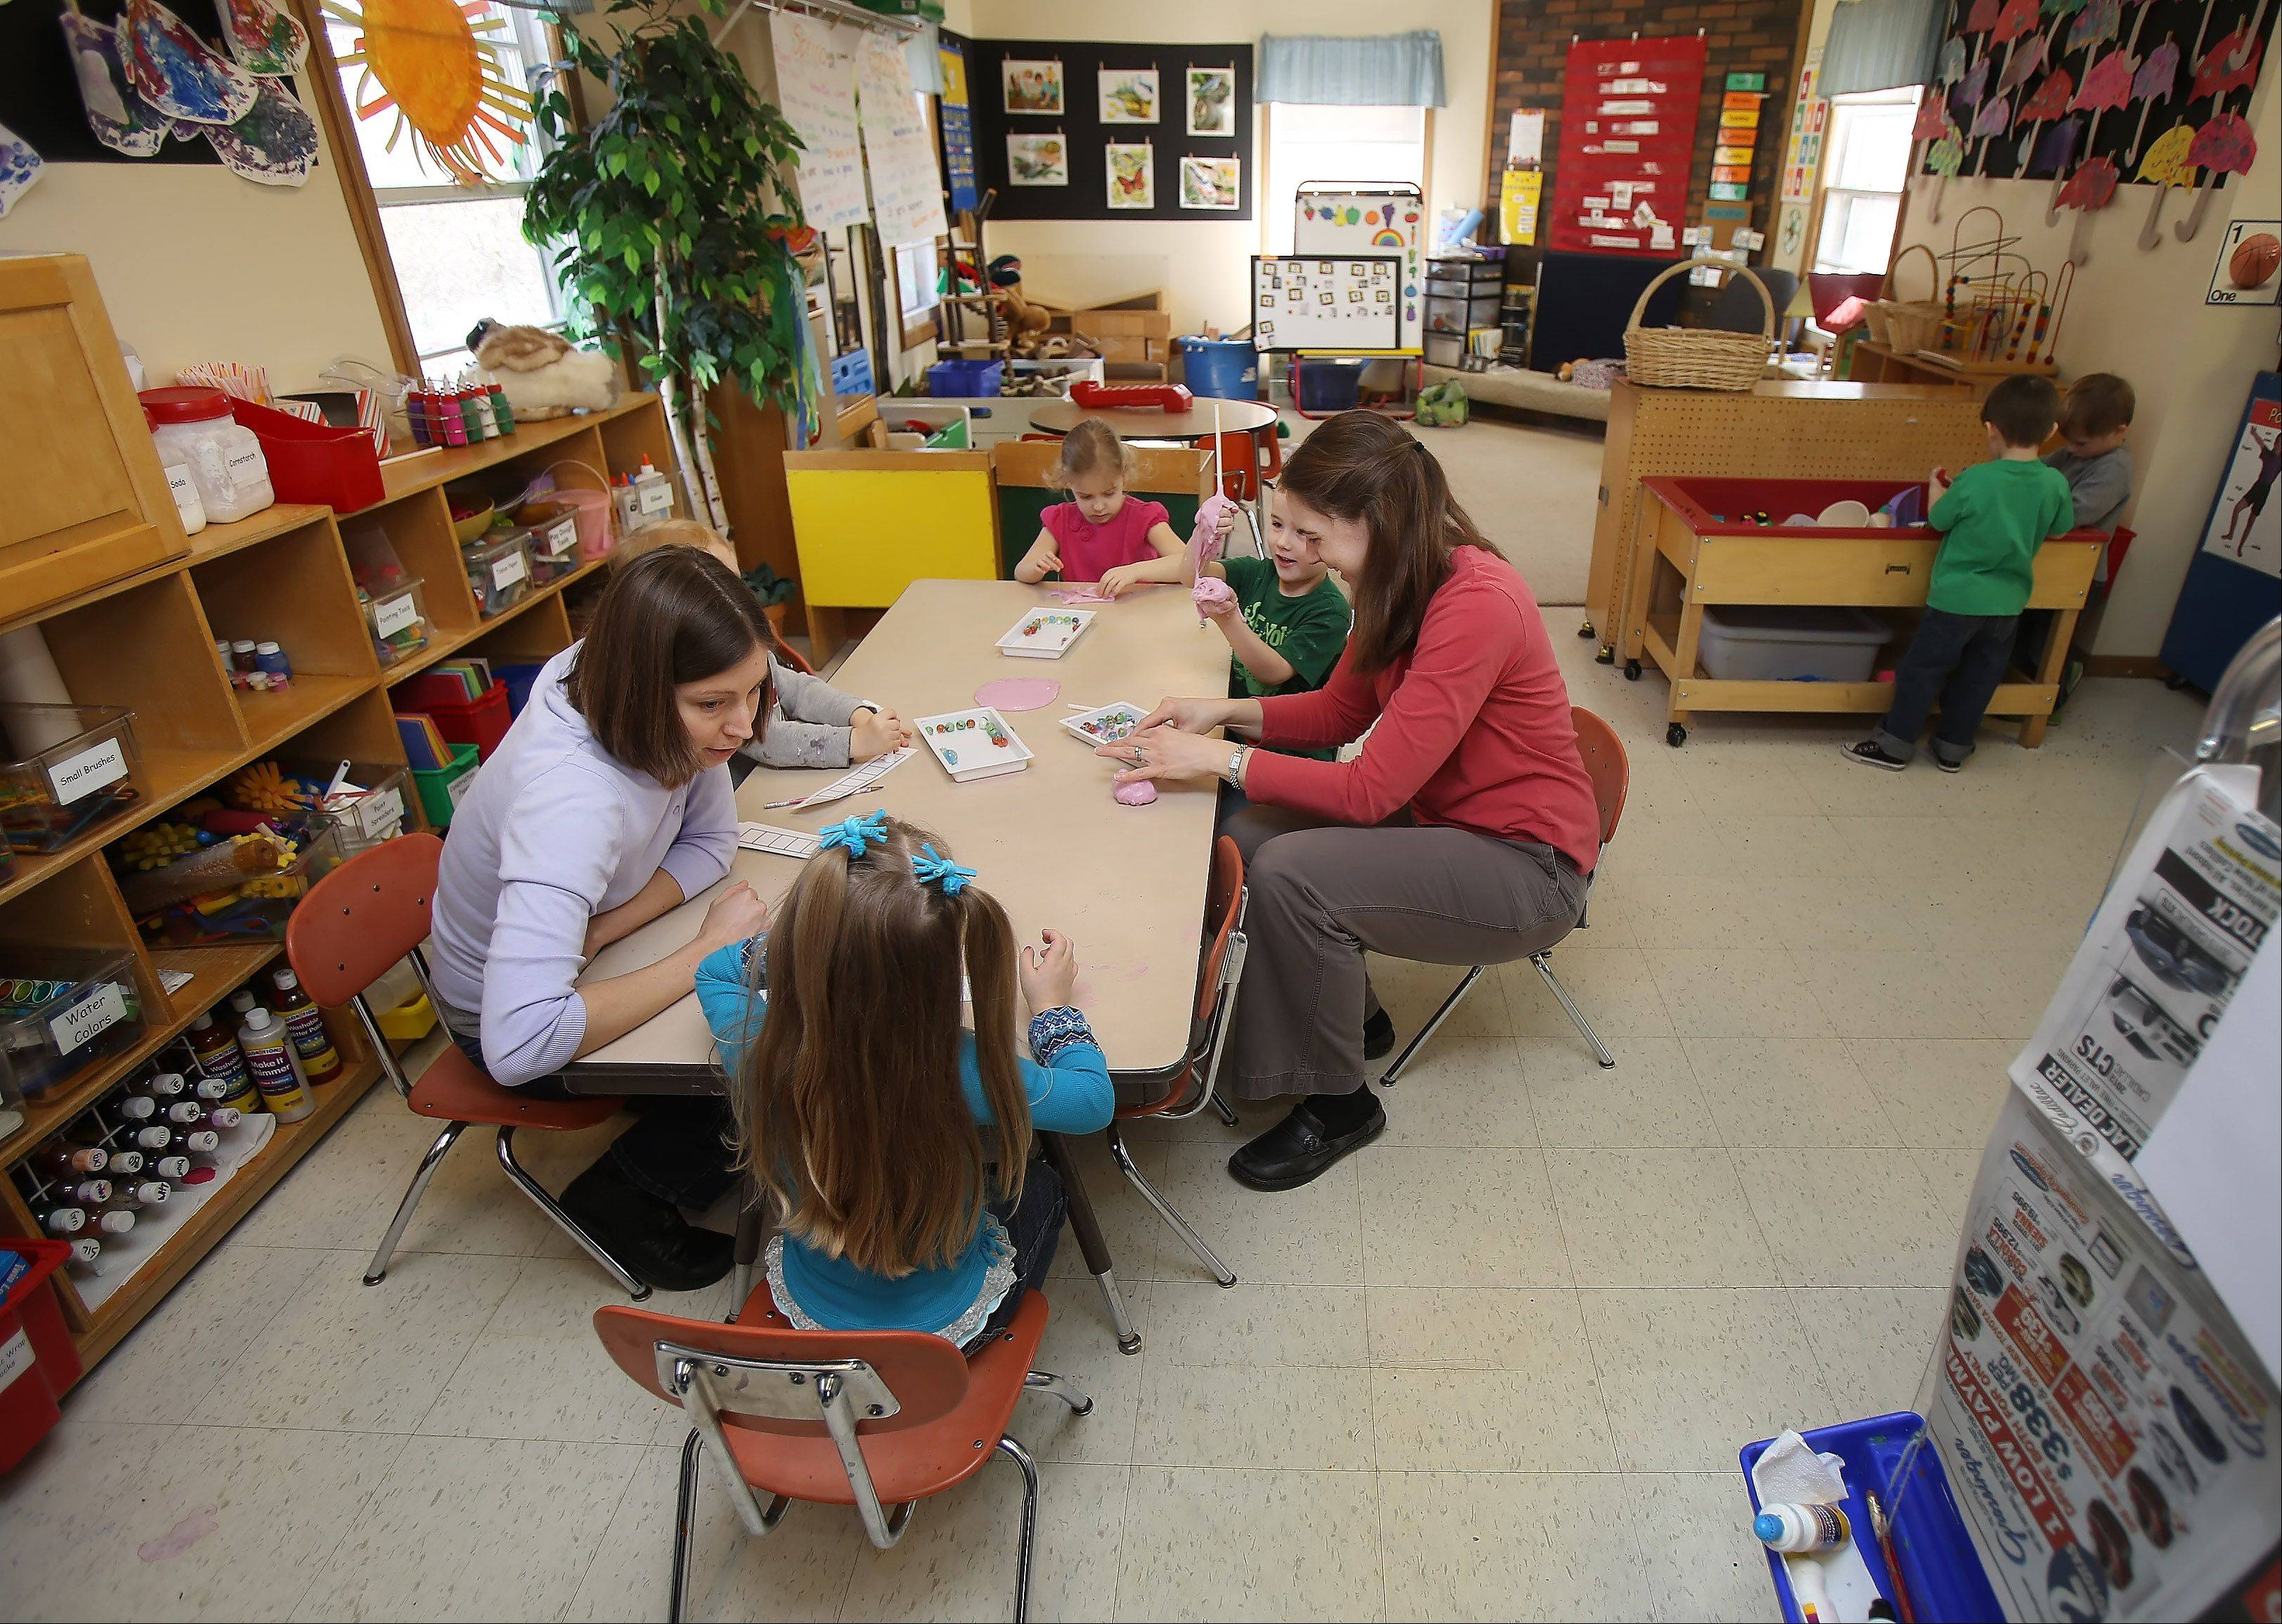 Assistant teacher Reagan Baiter, left, and mother Erica Garrelts work with children in a one-room class at Mundelein Cooperative Preschool.